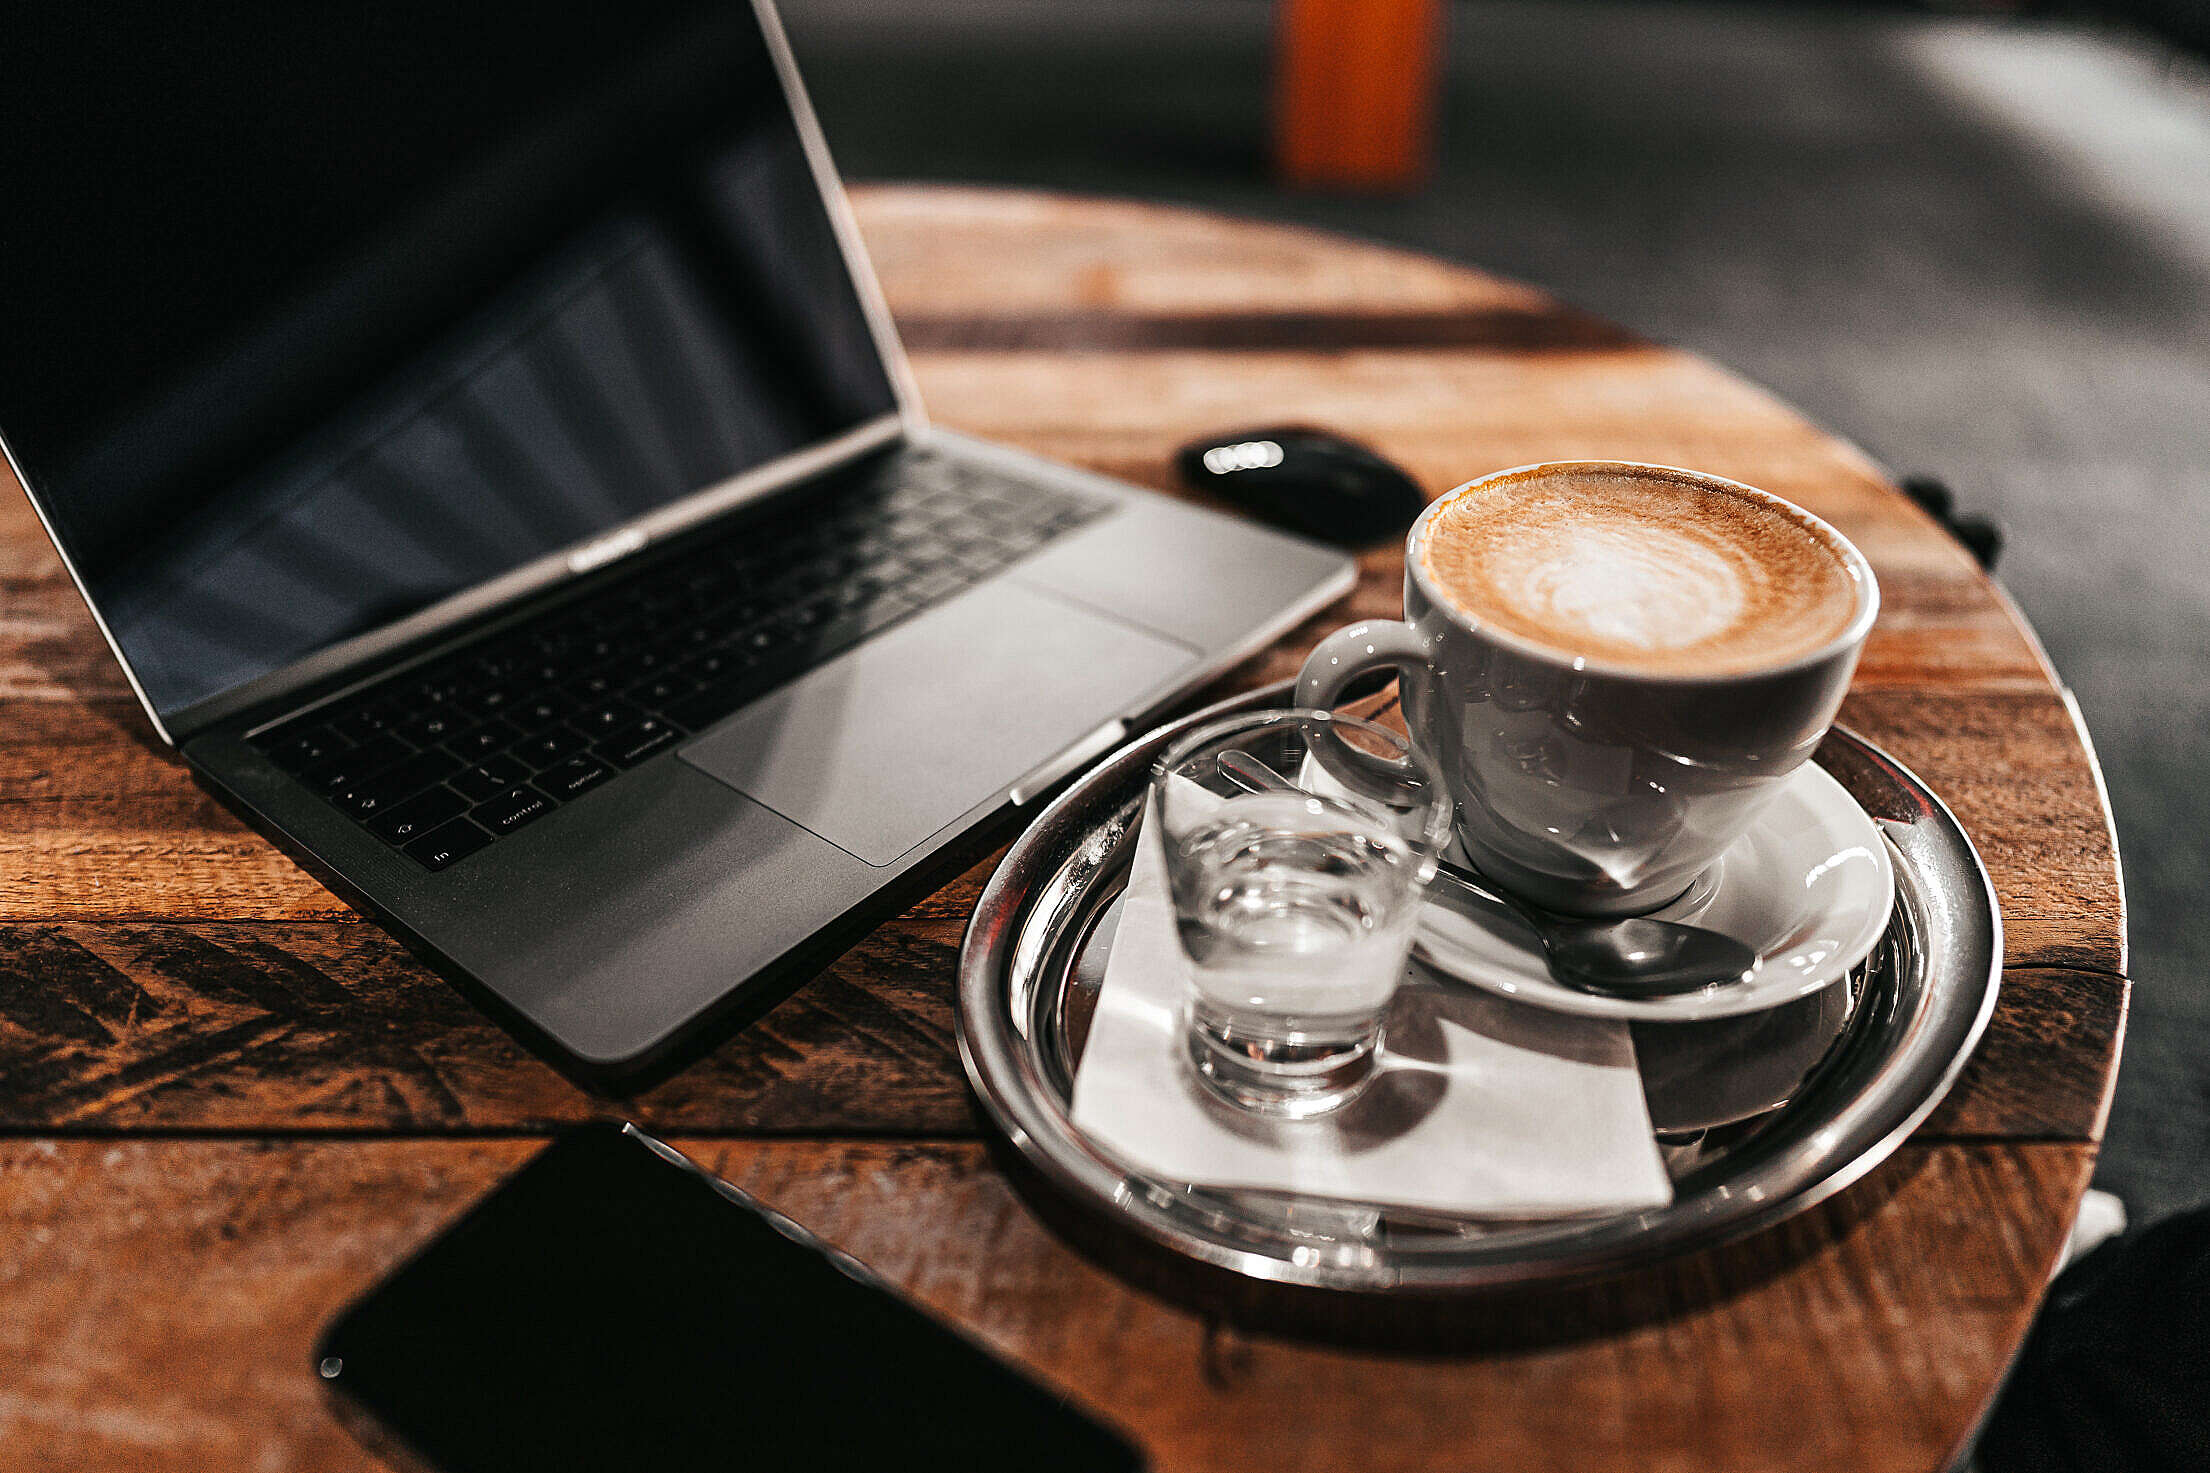 Laptop and Cappuccino on a Wooden Table Free Stock Photo